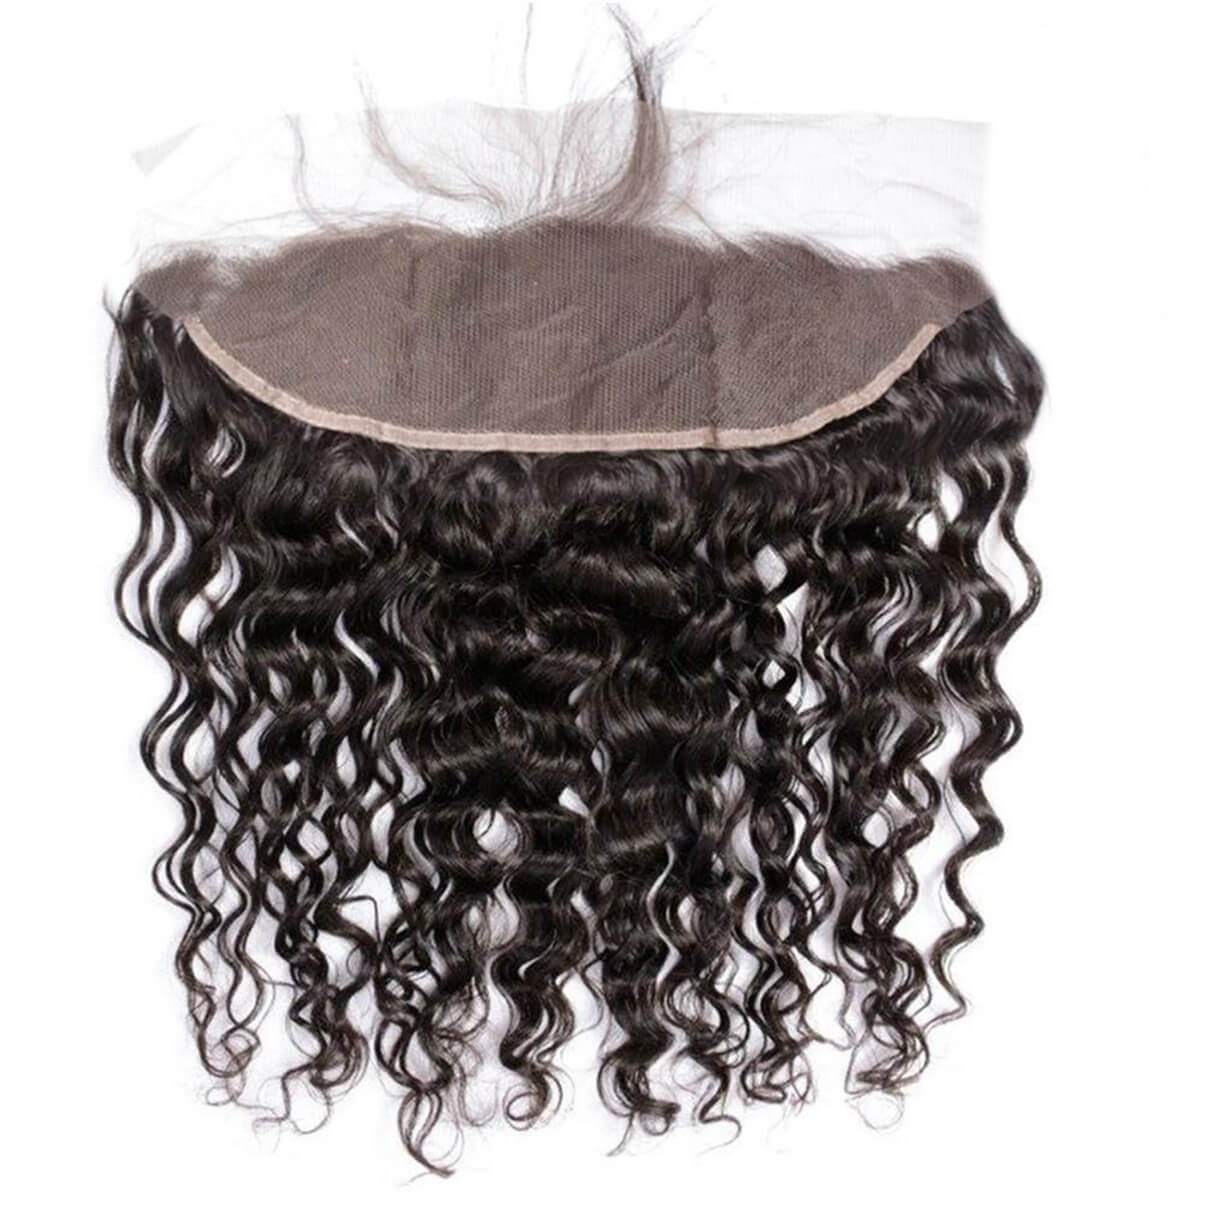 Lakihair 8A Brazilian Human Hair Extensions 4 Bundles With Lace Frontal Closure 13x4 Ear To Ear